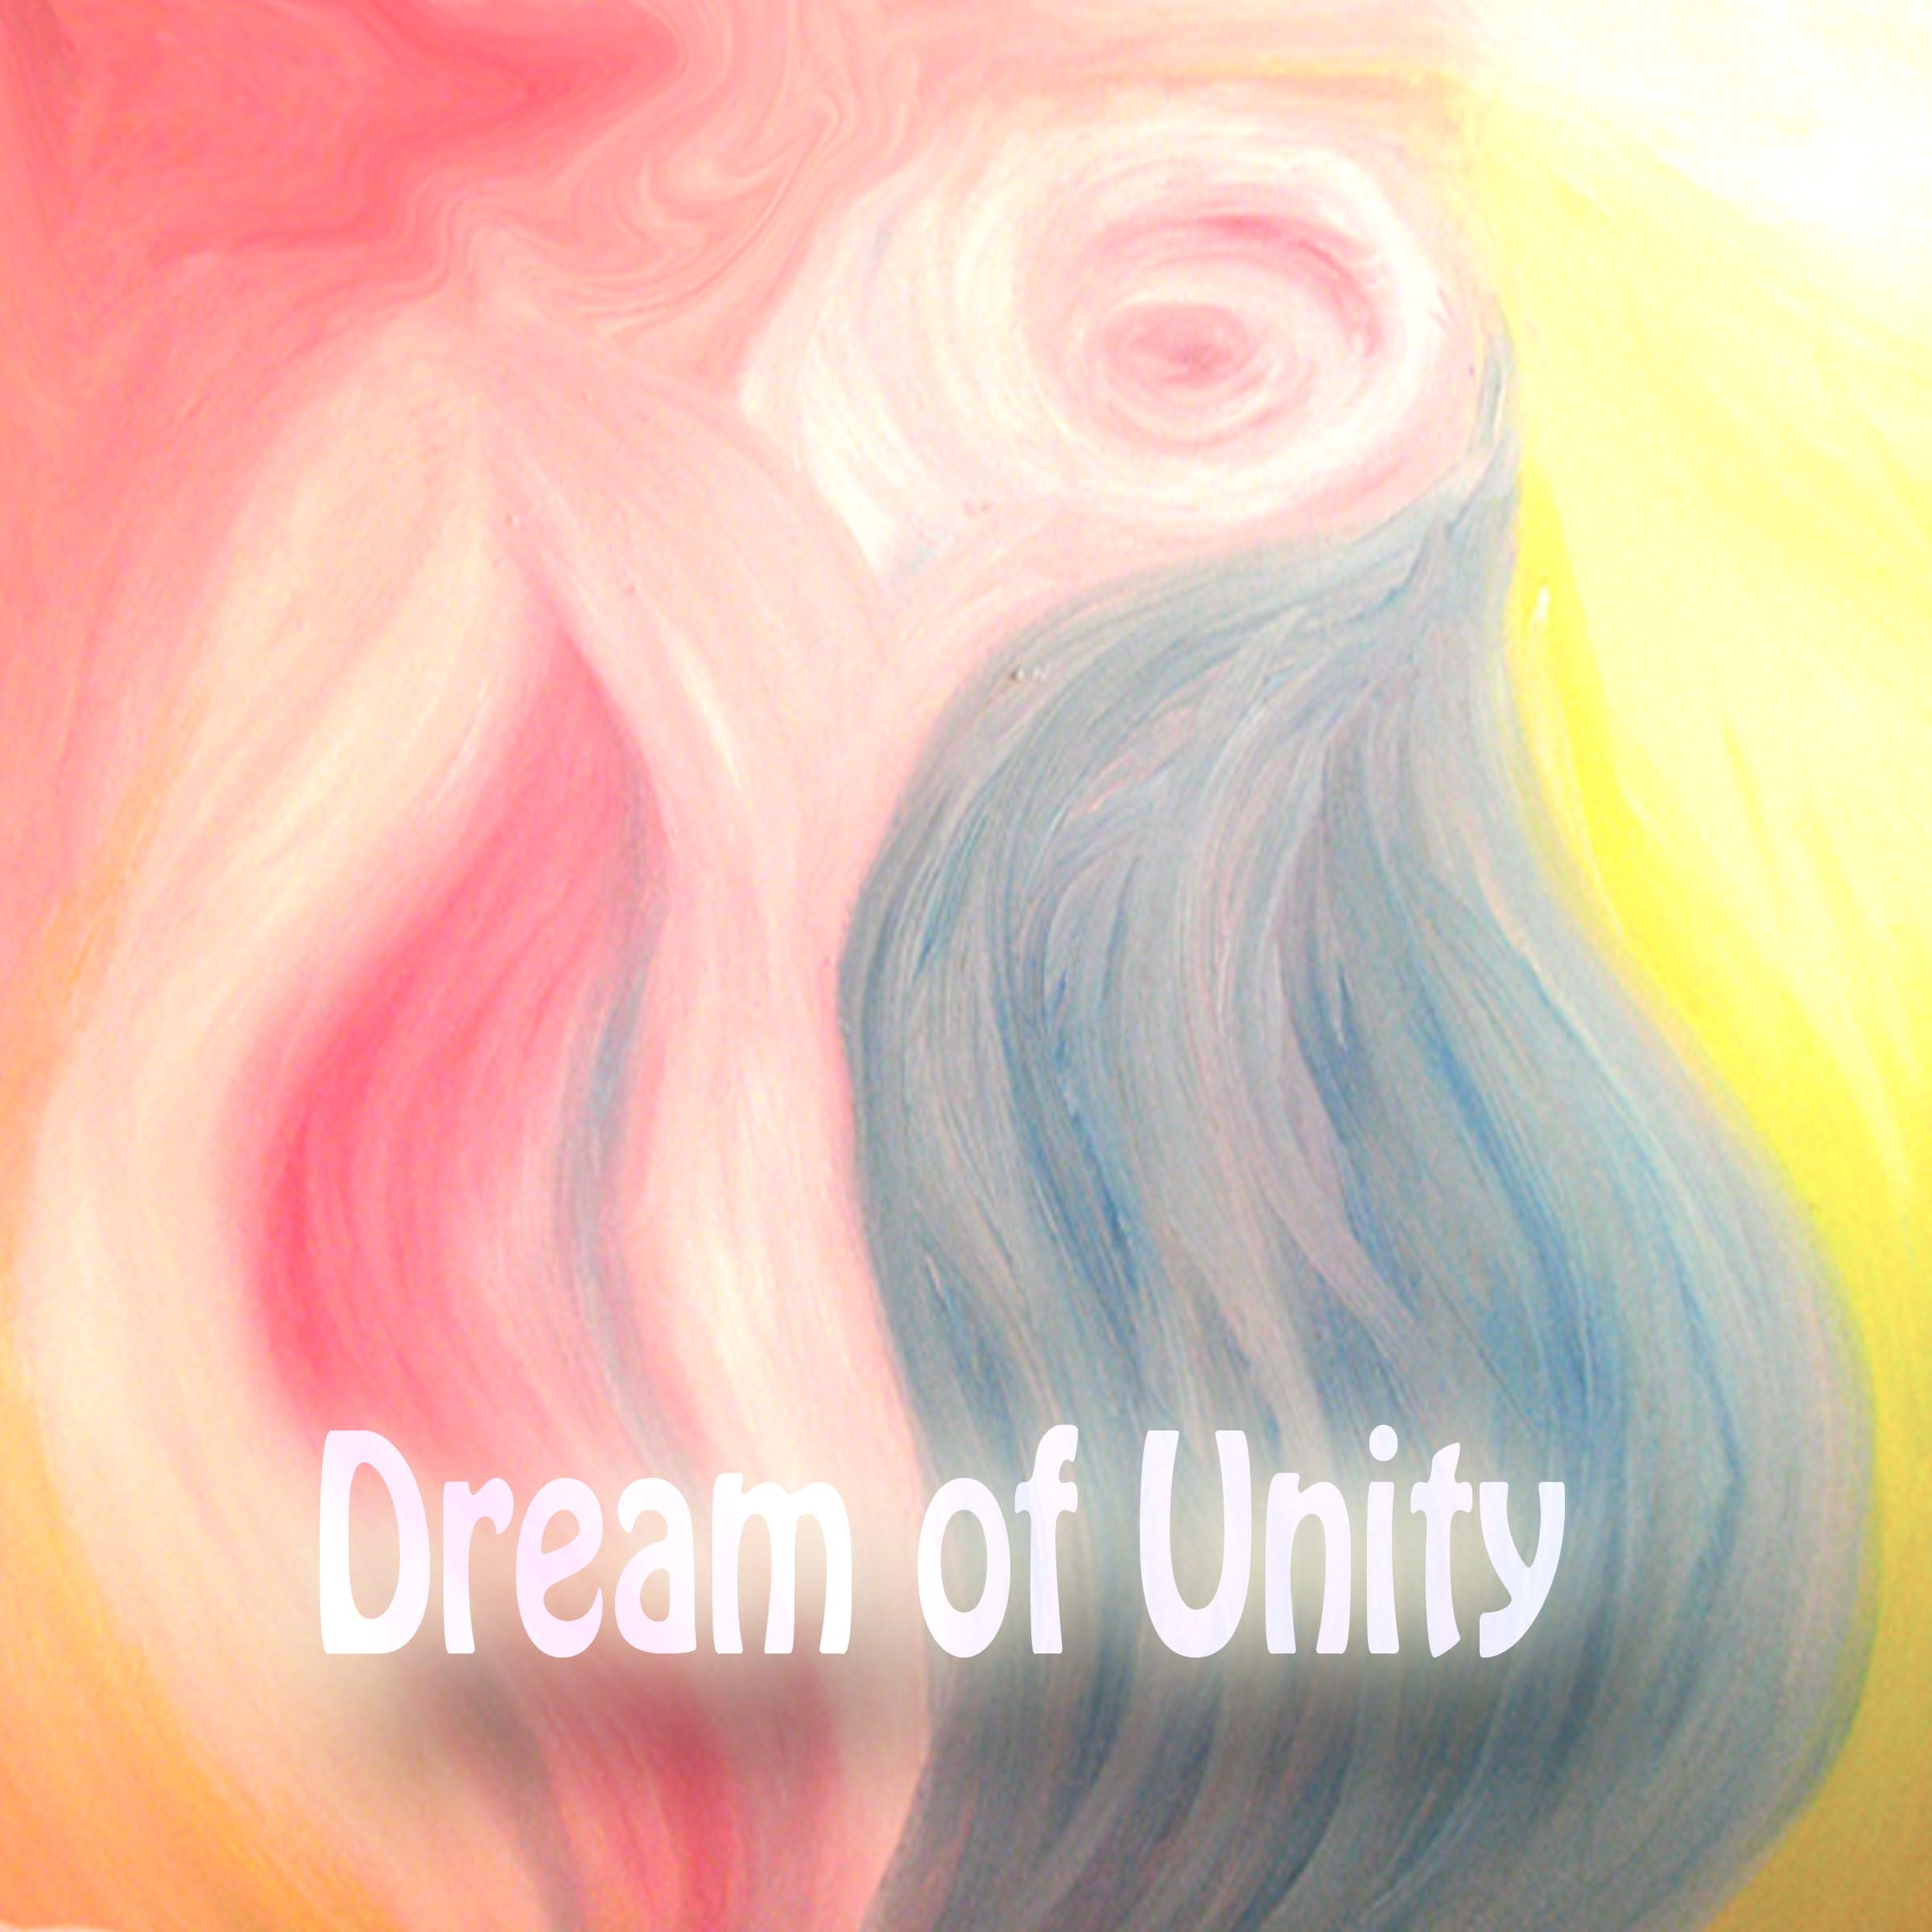 Dream of unity album cover